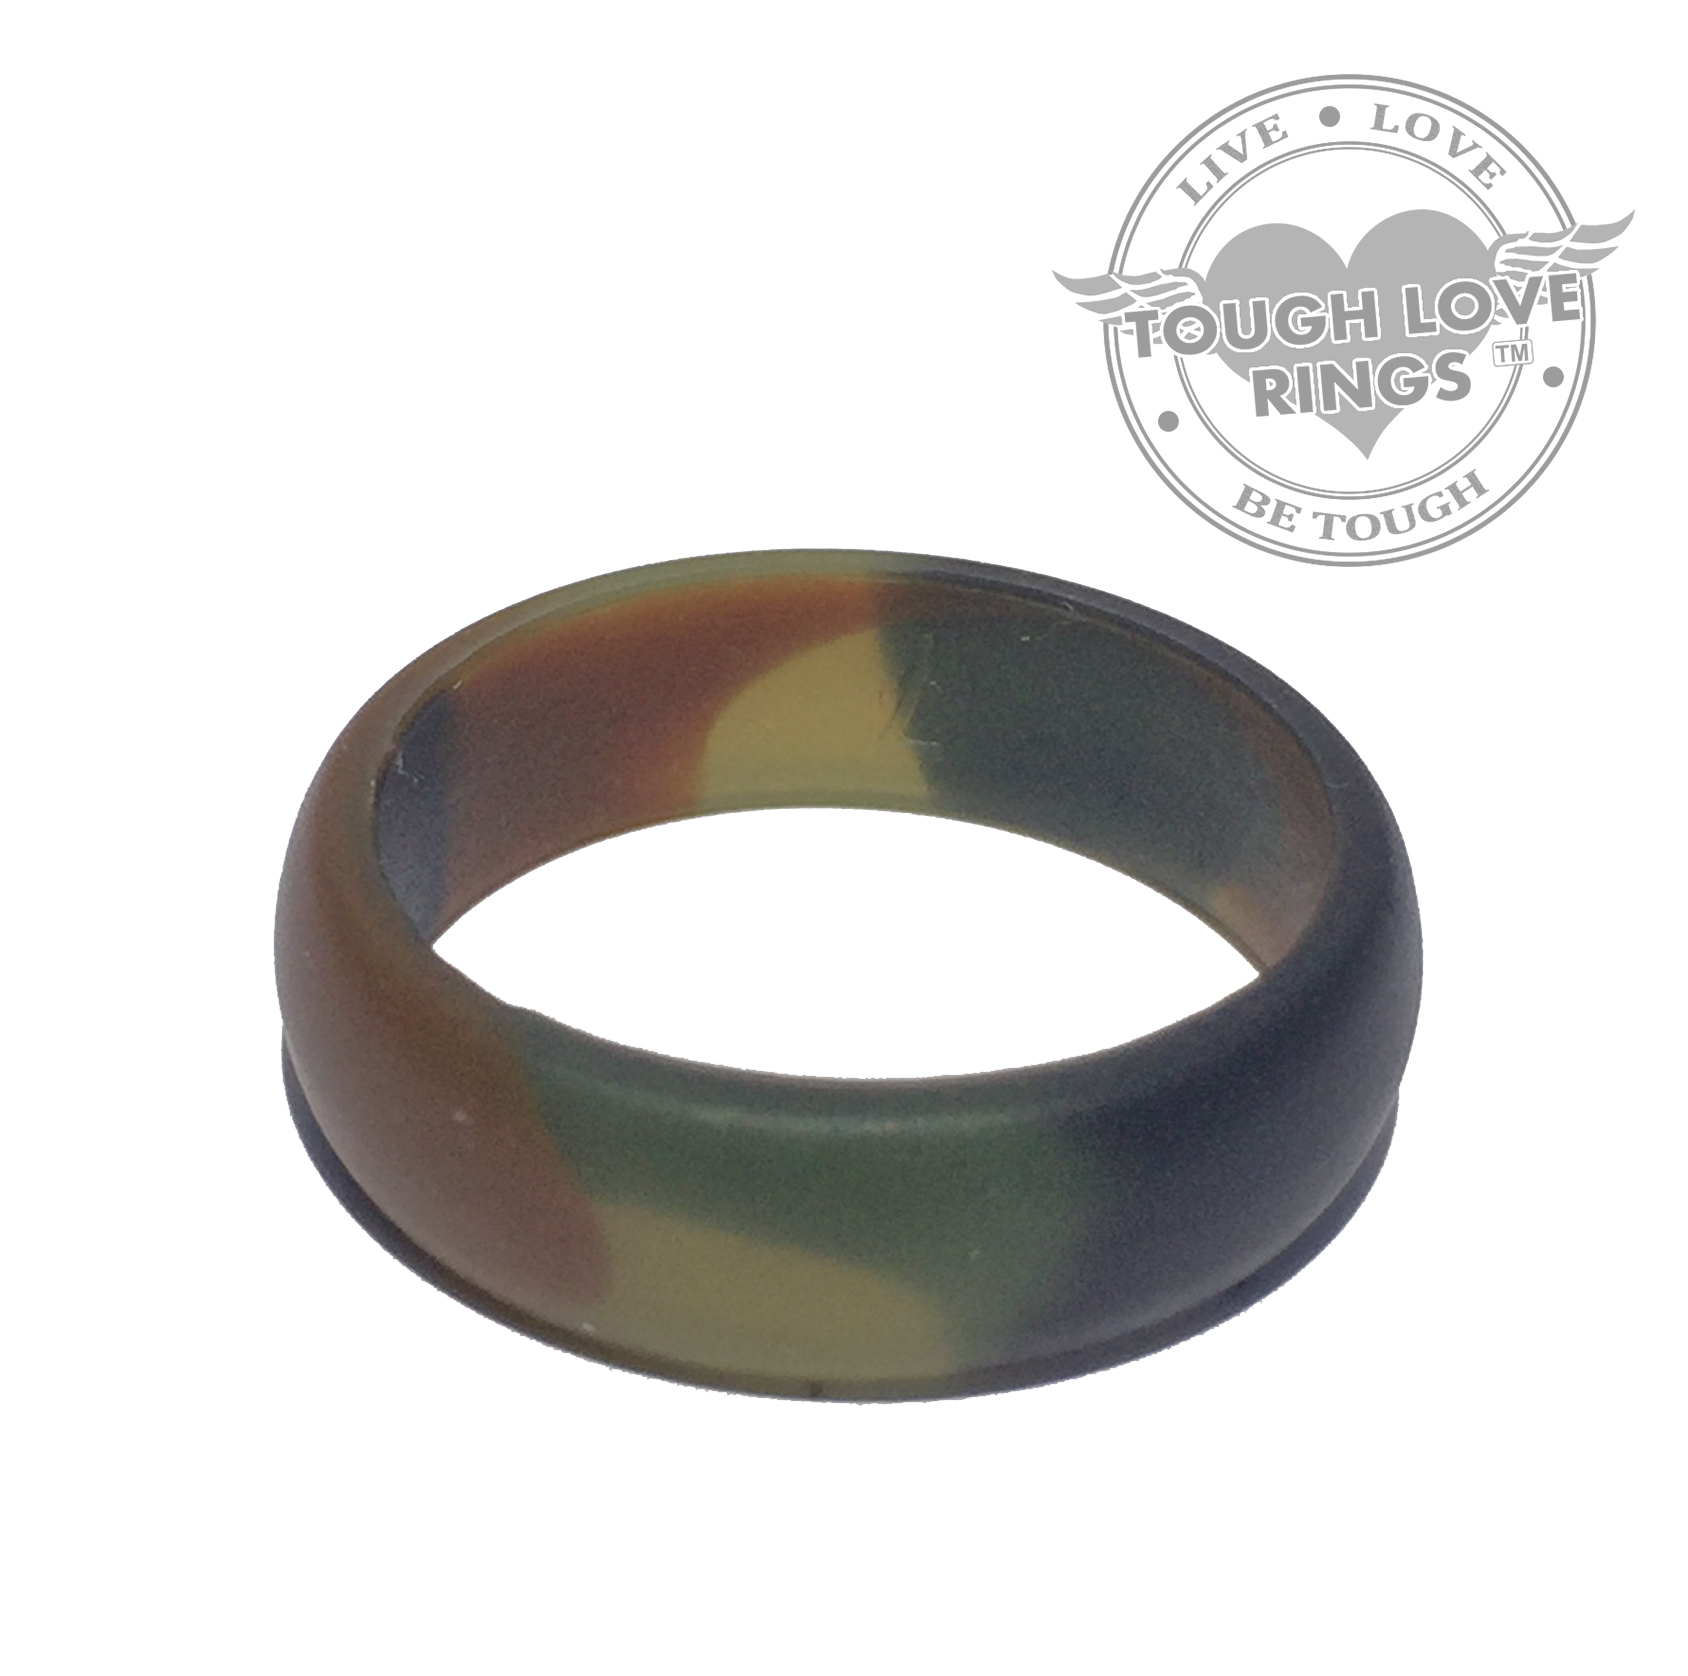 tough love premium silicone wedding rings striped greenyellow line thick band silicone wedding ring TOUGH LOVE Premium Silicone Wedding Rings Camo GREEN Thin band